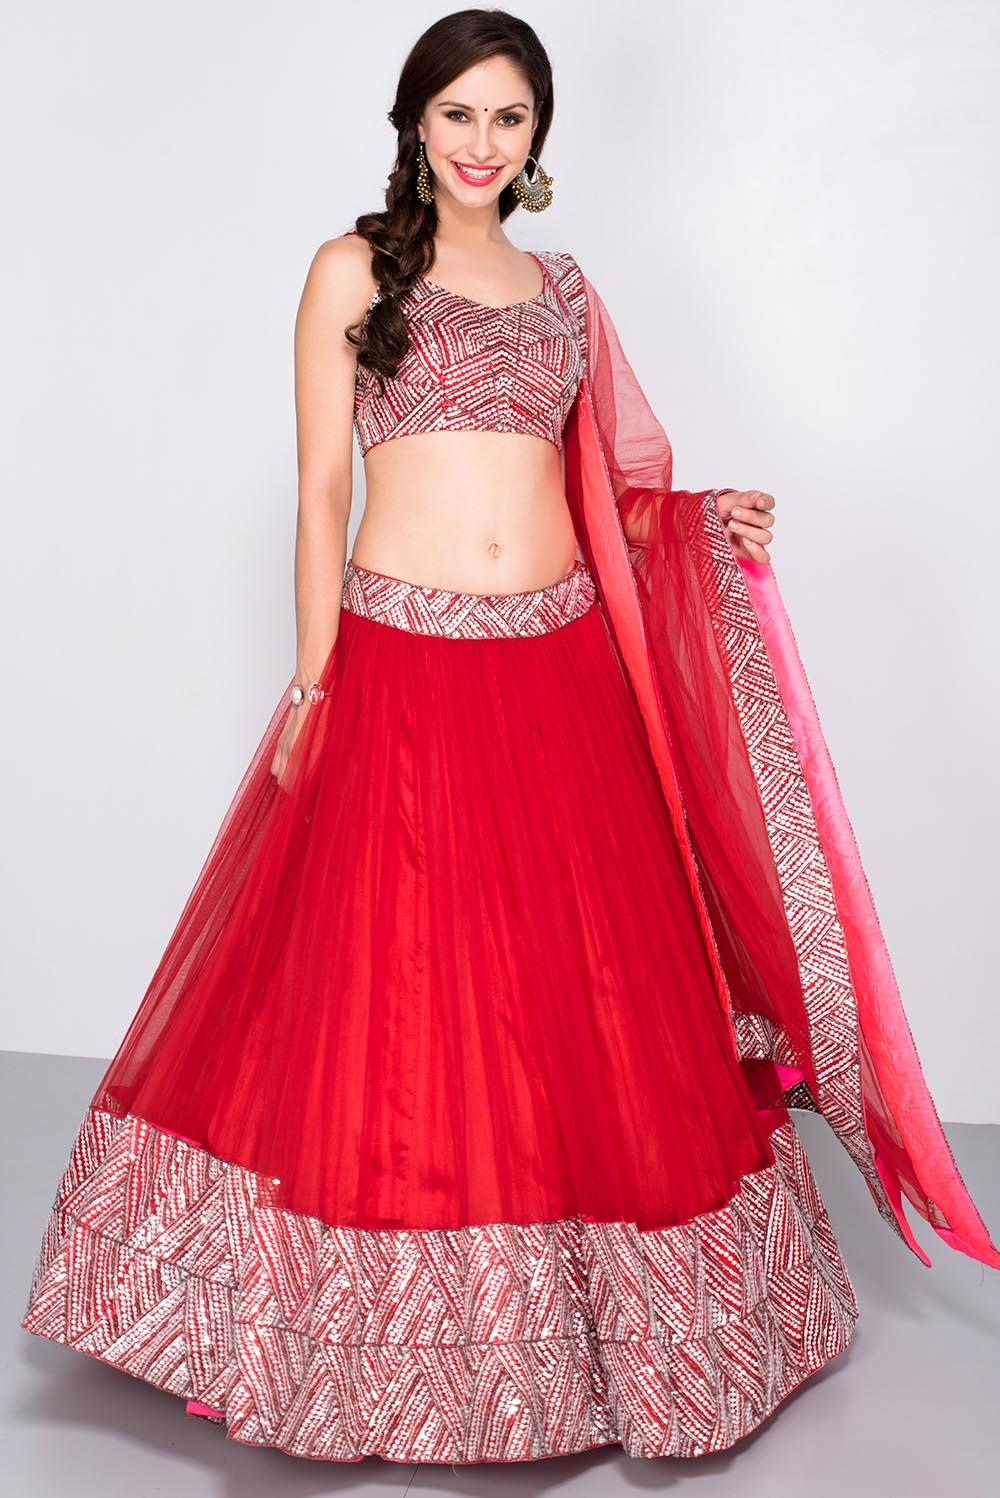 Cant Give Up Your Love For Lehengas This Red Sequin Lehenga By Mahima Mahajan Set Will Make Sure That You Shine Like A Star On The Stage